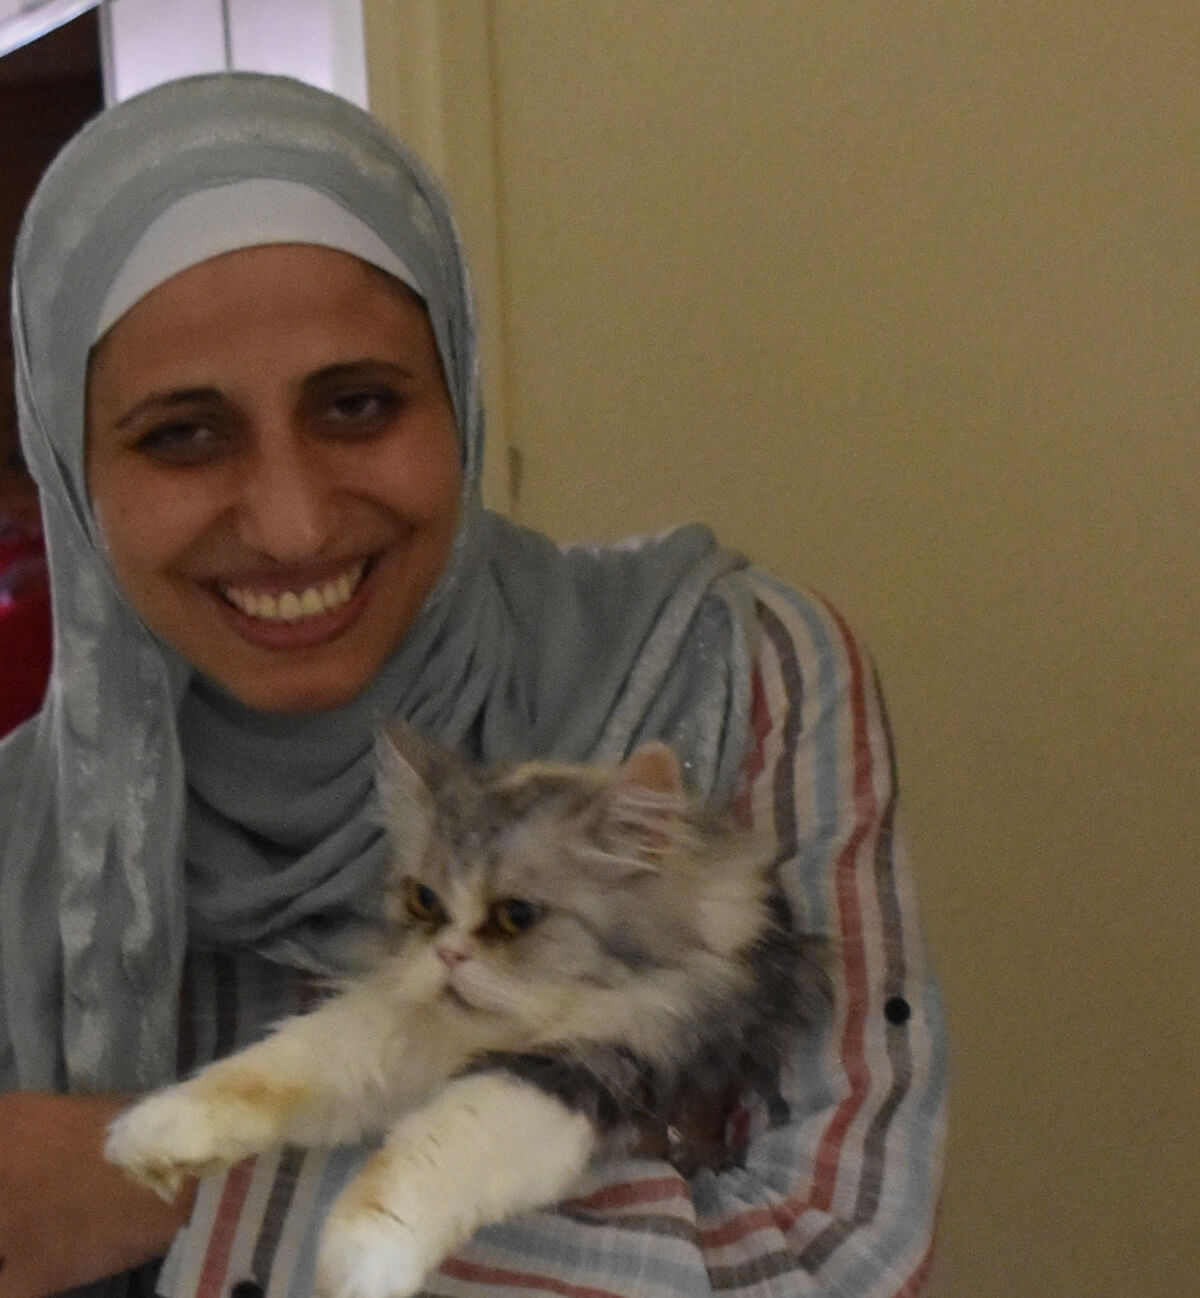 Dareen Tatour with one of her cats. (Photo: Zahi Khamis)